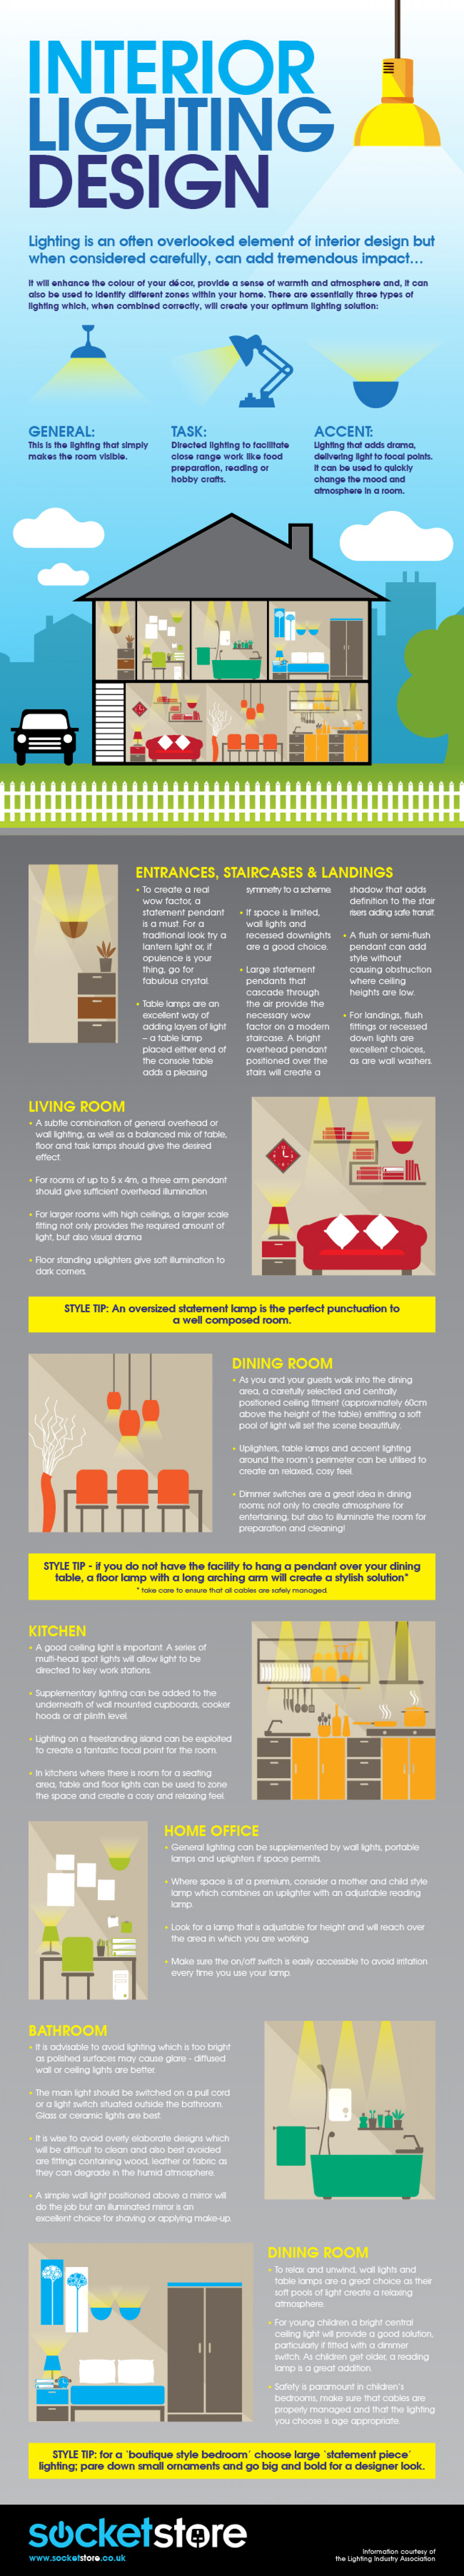 Interior Lighting Design Infographic